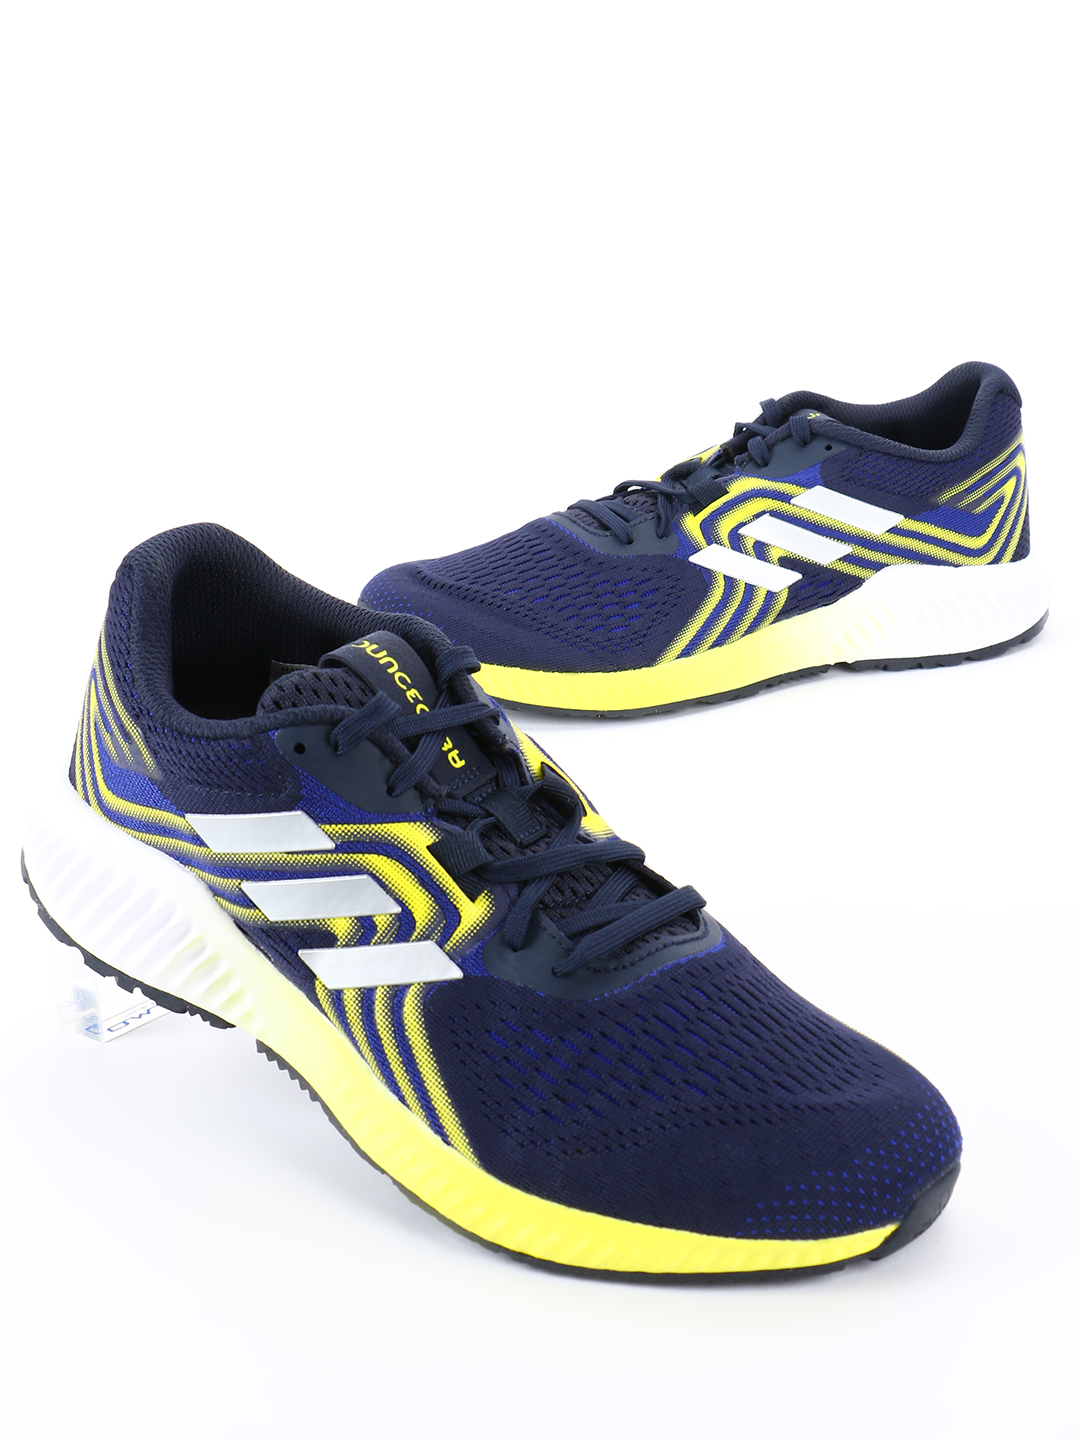 Adidas Multi Aerobounce 2 Shoes 1